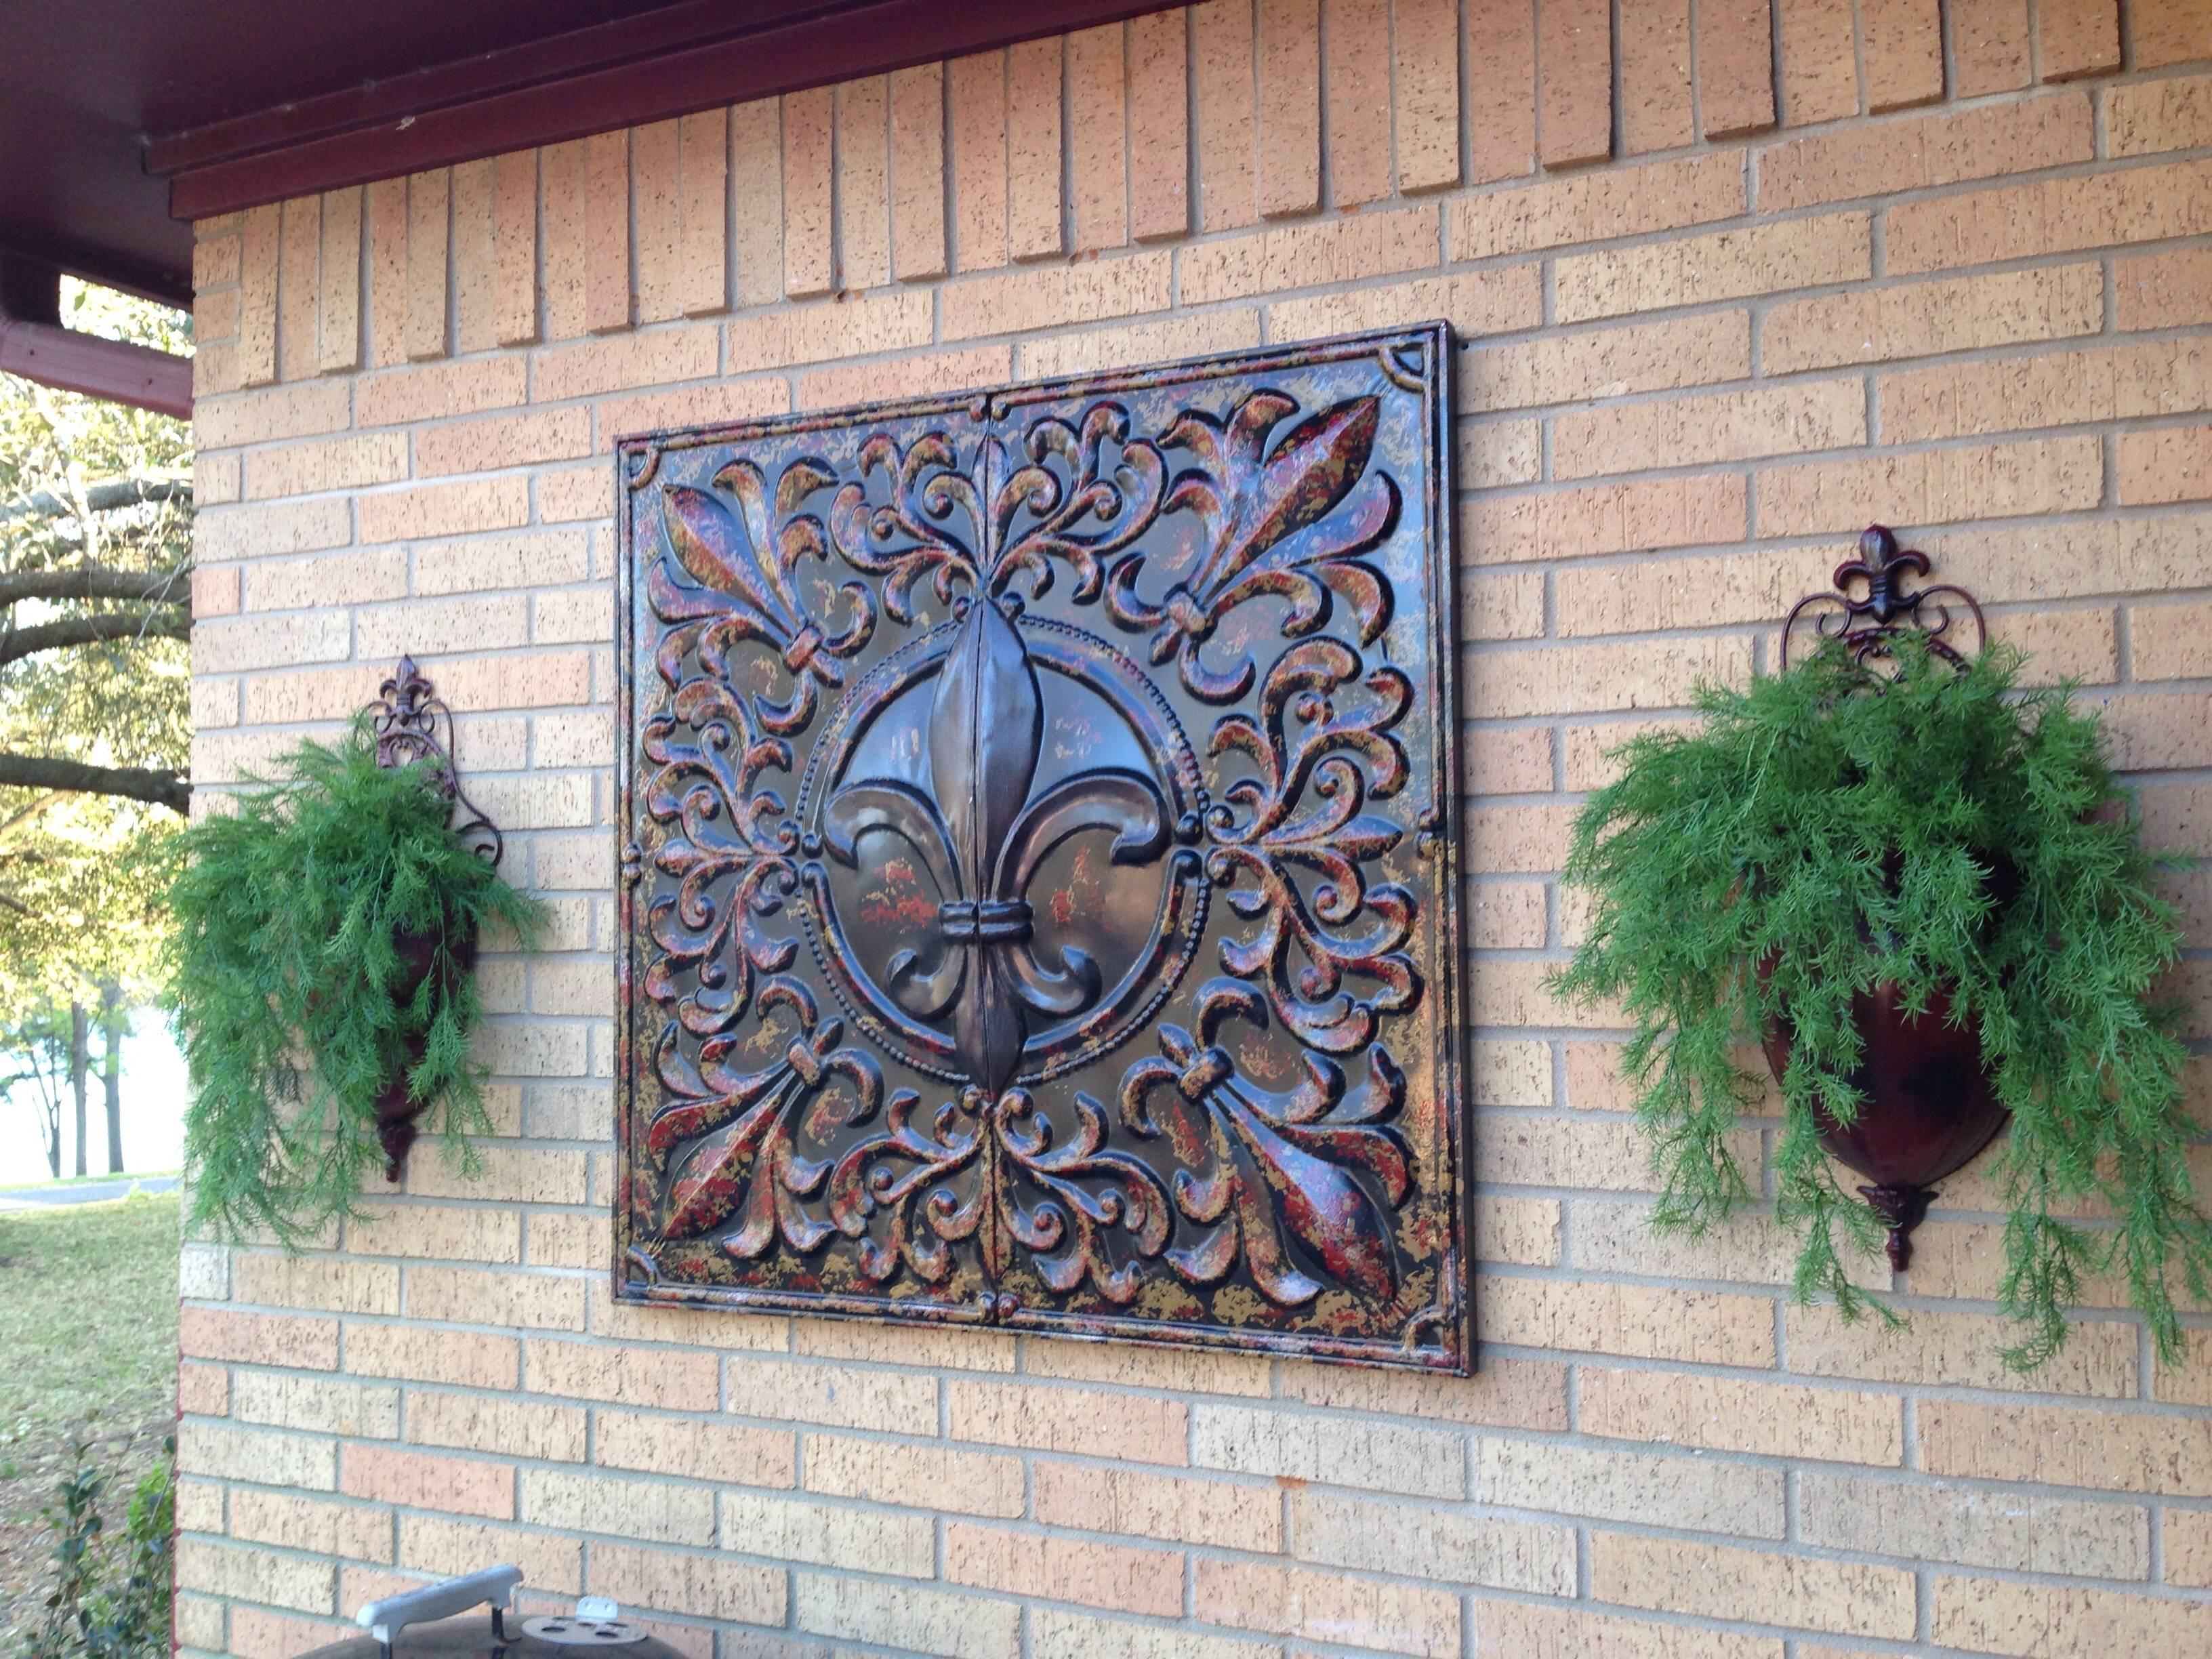 Classy Design Ideas Metal Wall Art Hobby Lobby – Decoration Inside Most Up To Date Hobby Lobby Metal Wall Art (View 3 of 20)